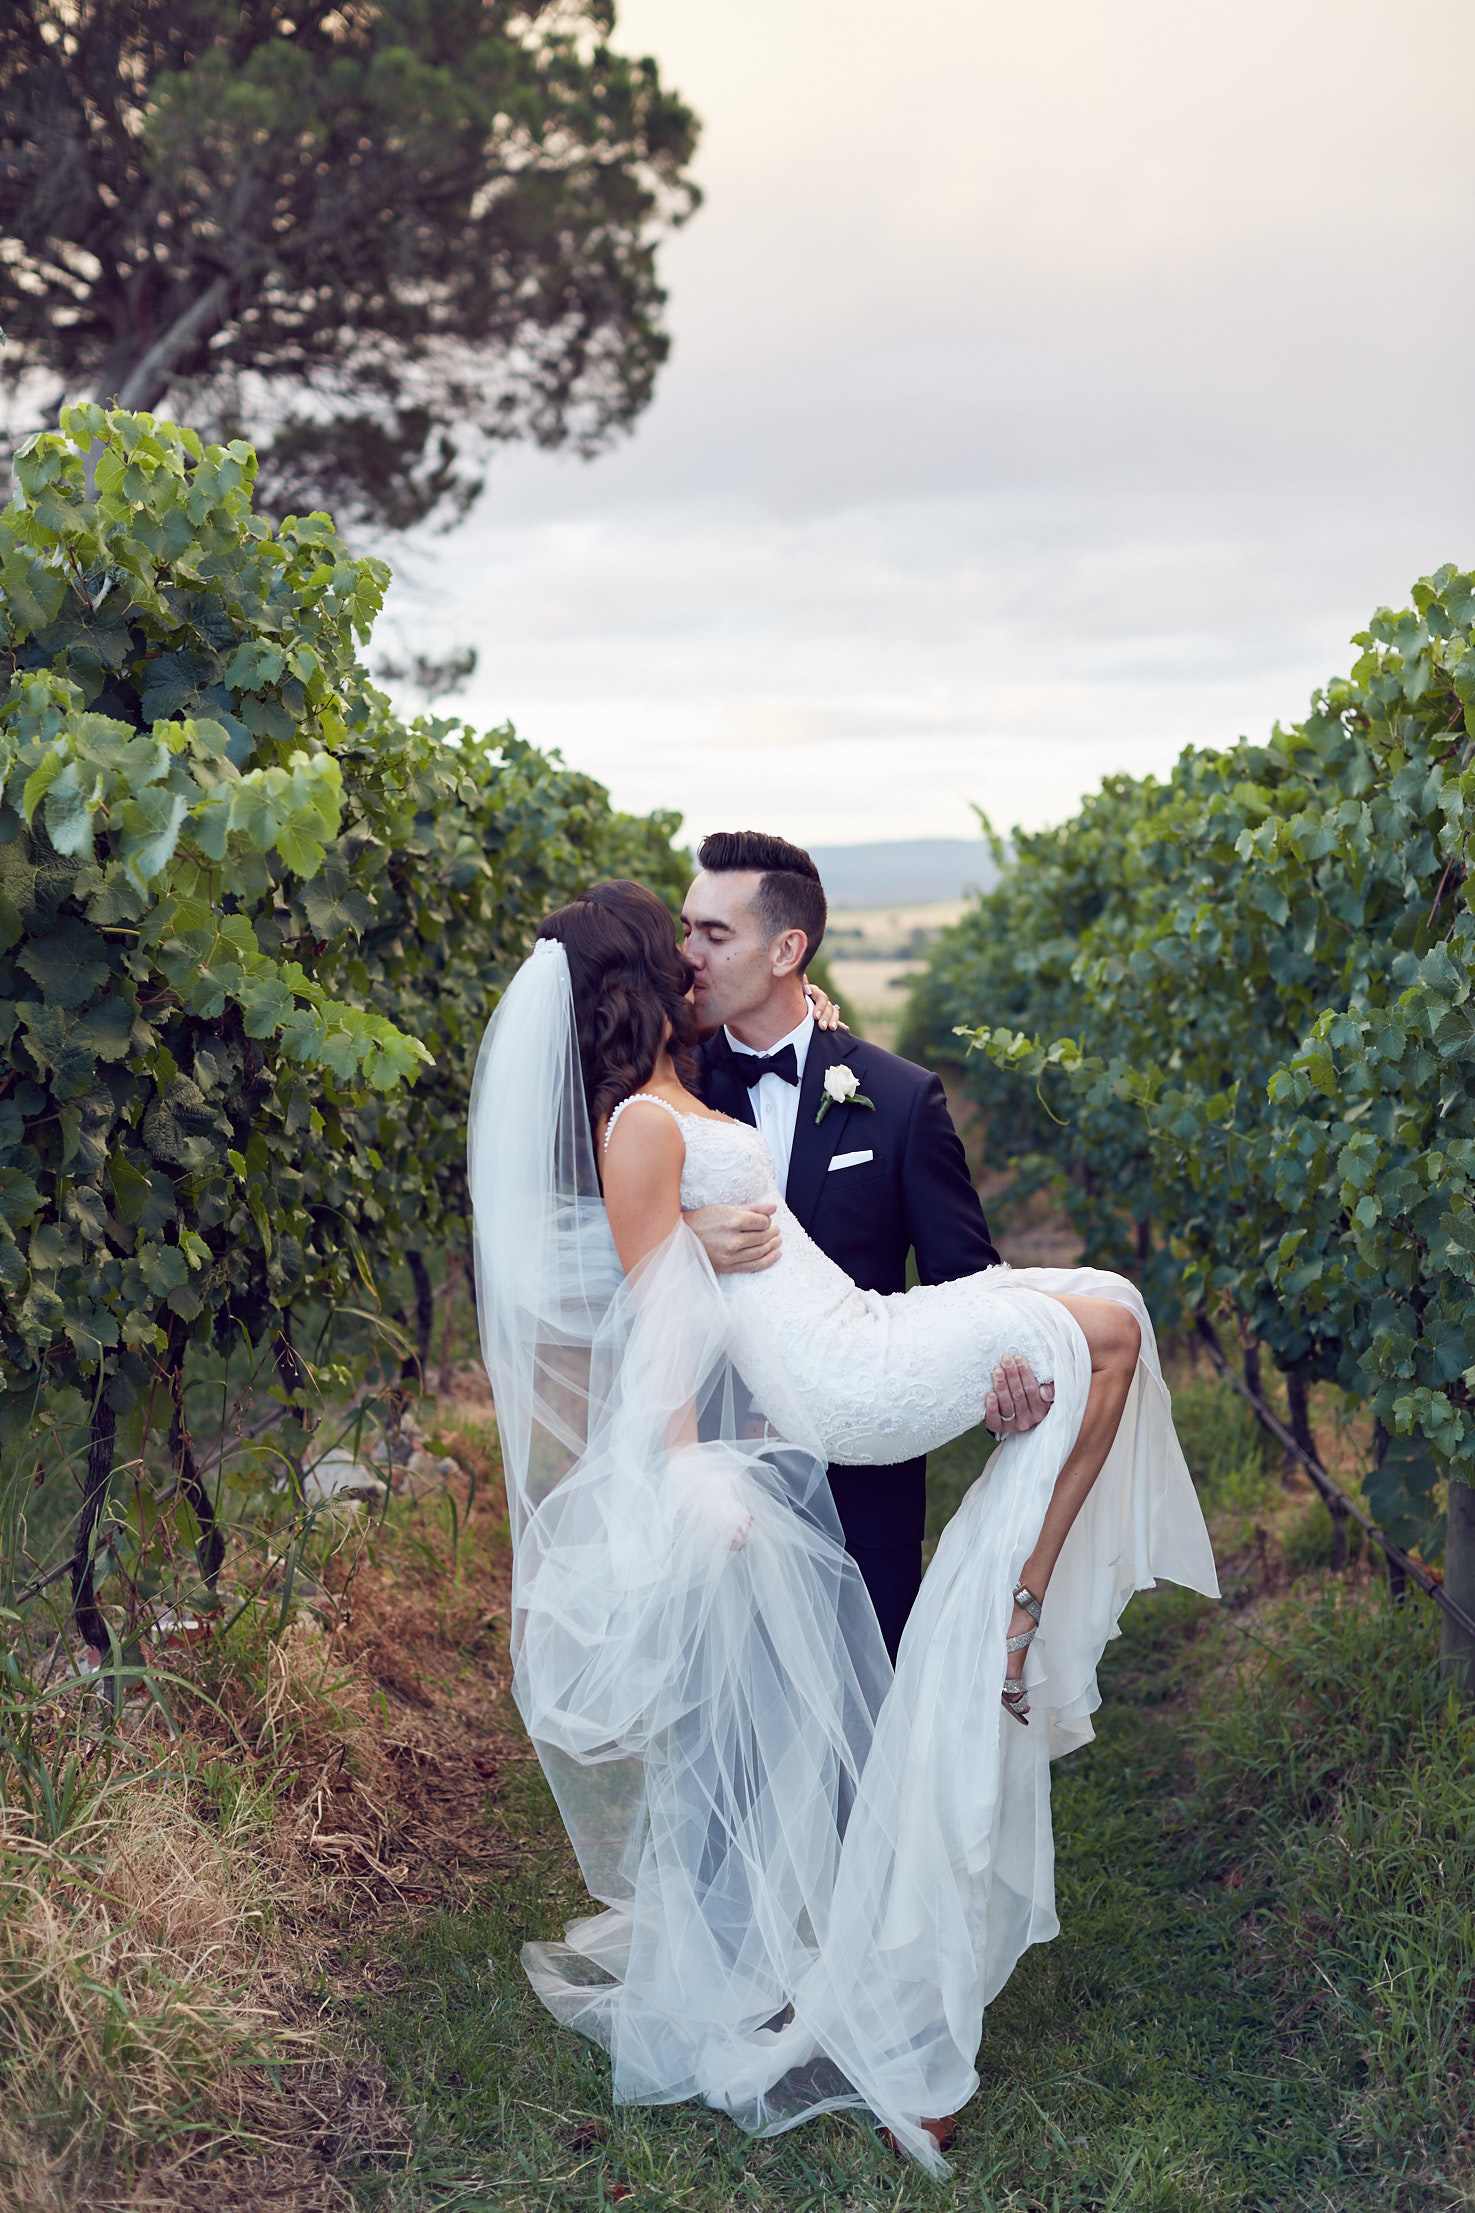 In amongst the grape vines at Stones Of The Yarra Valley, these two enjoyed a sun shower, rainbow, sunset and a big smooch!